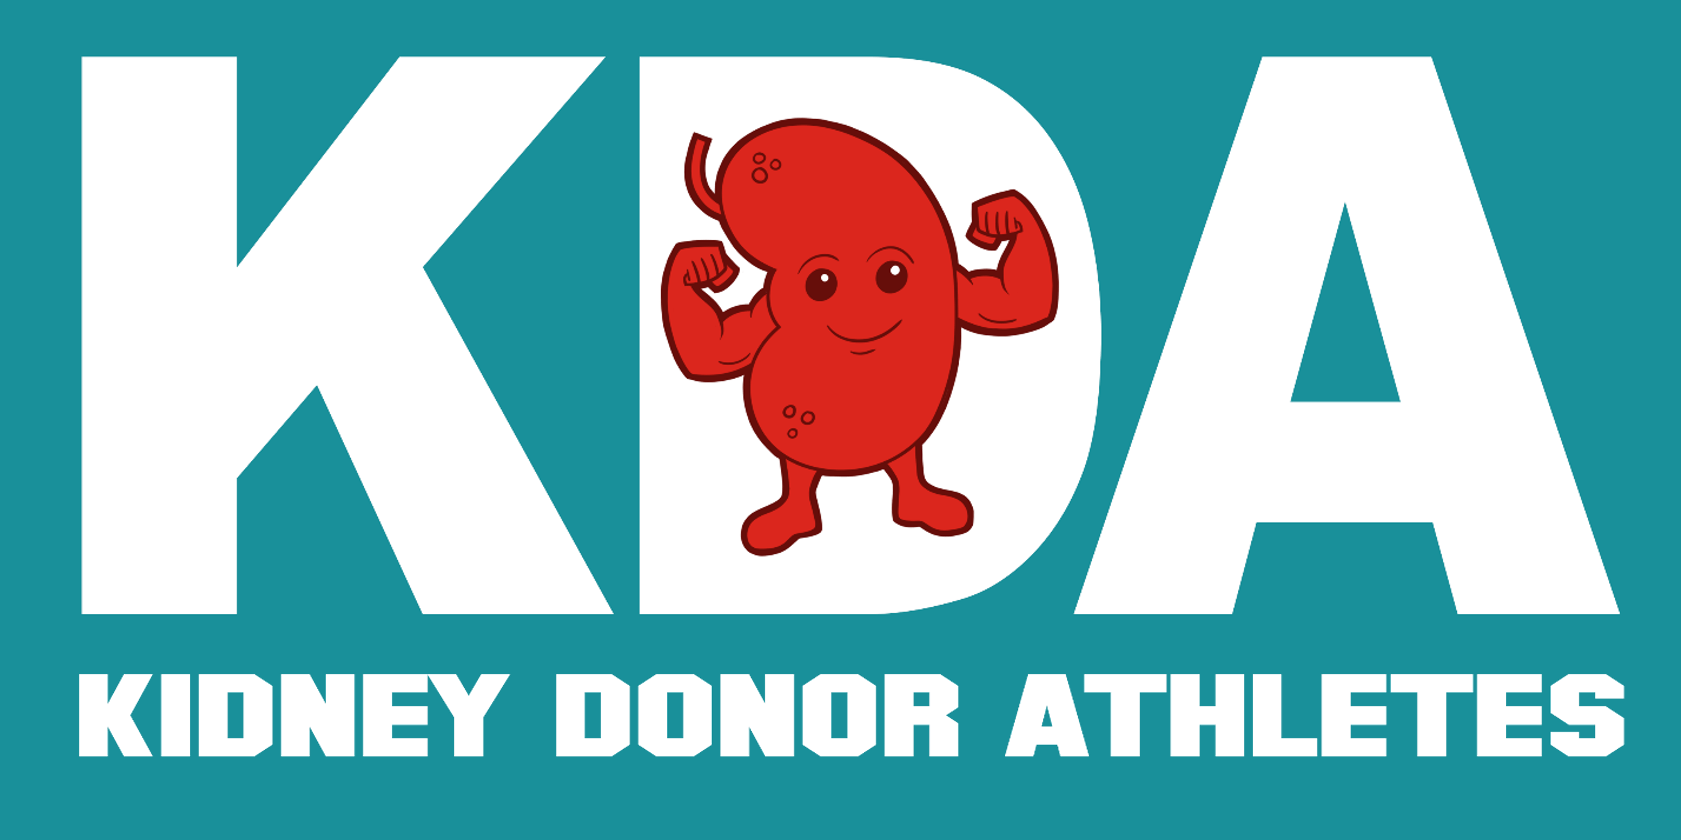 Kidney Donor Athletes